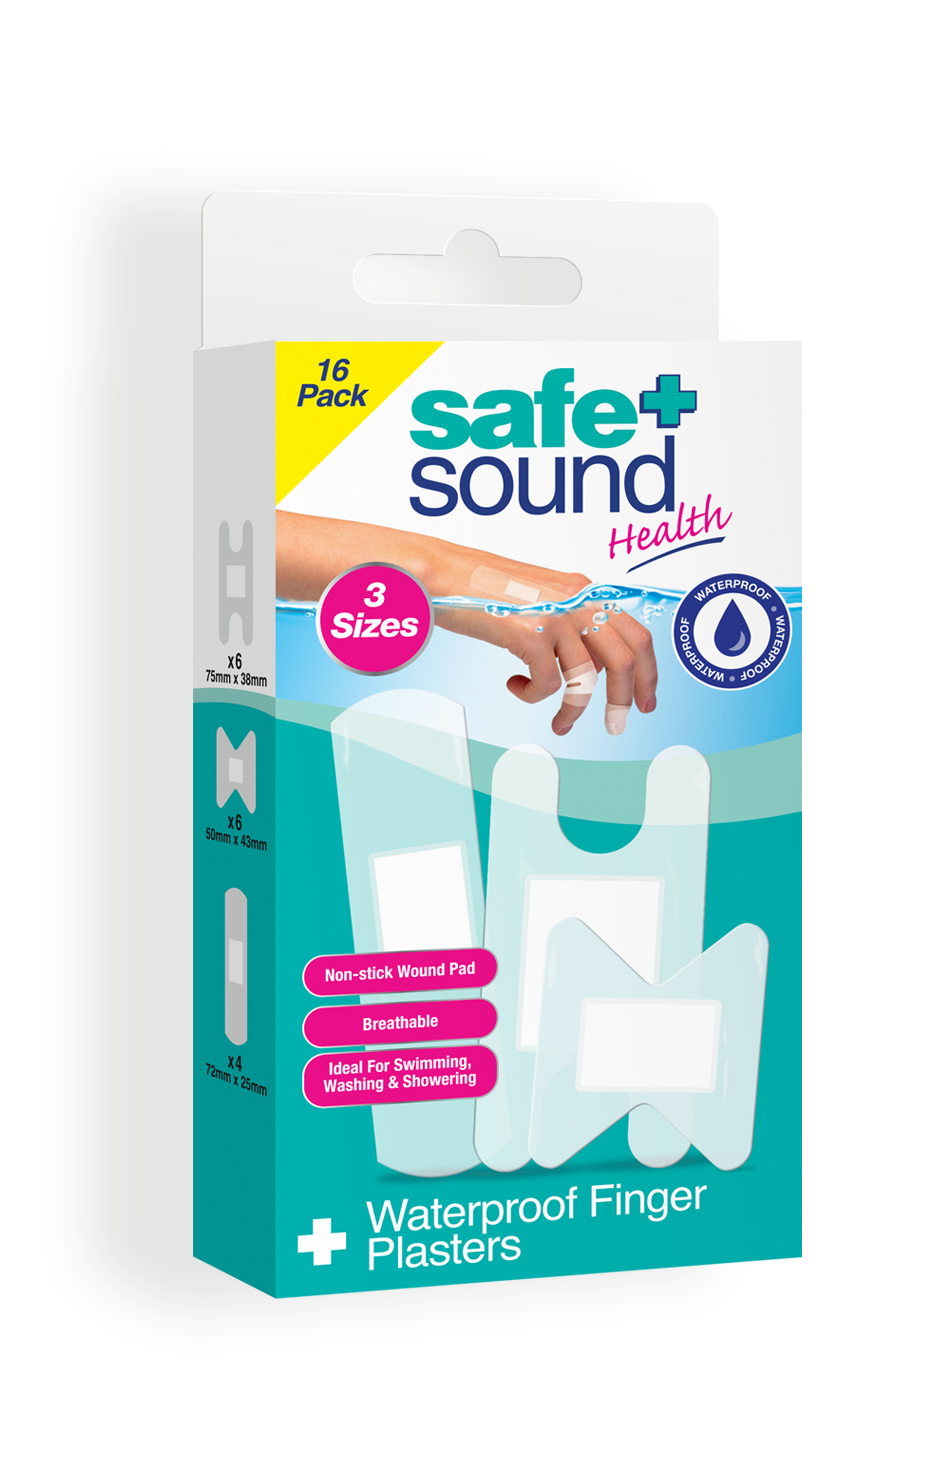 Safe and Sound Waterproof Finger Plasters